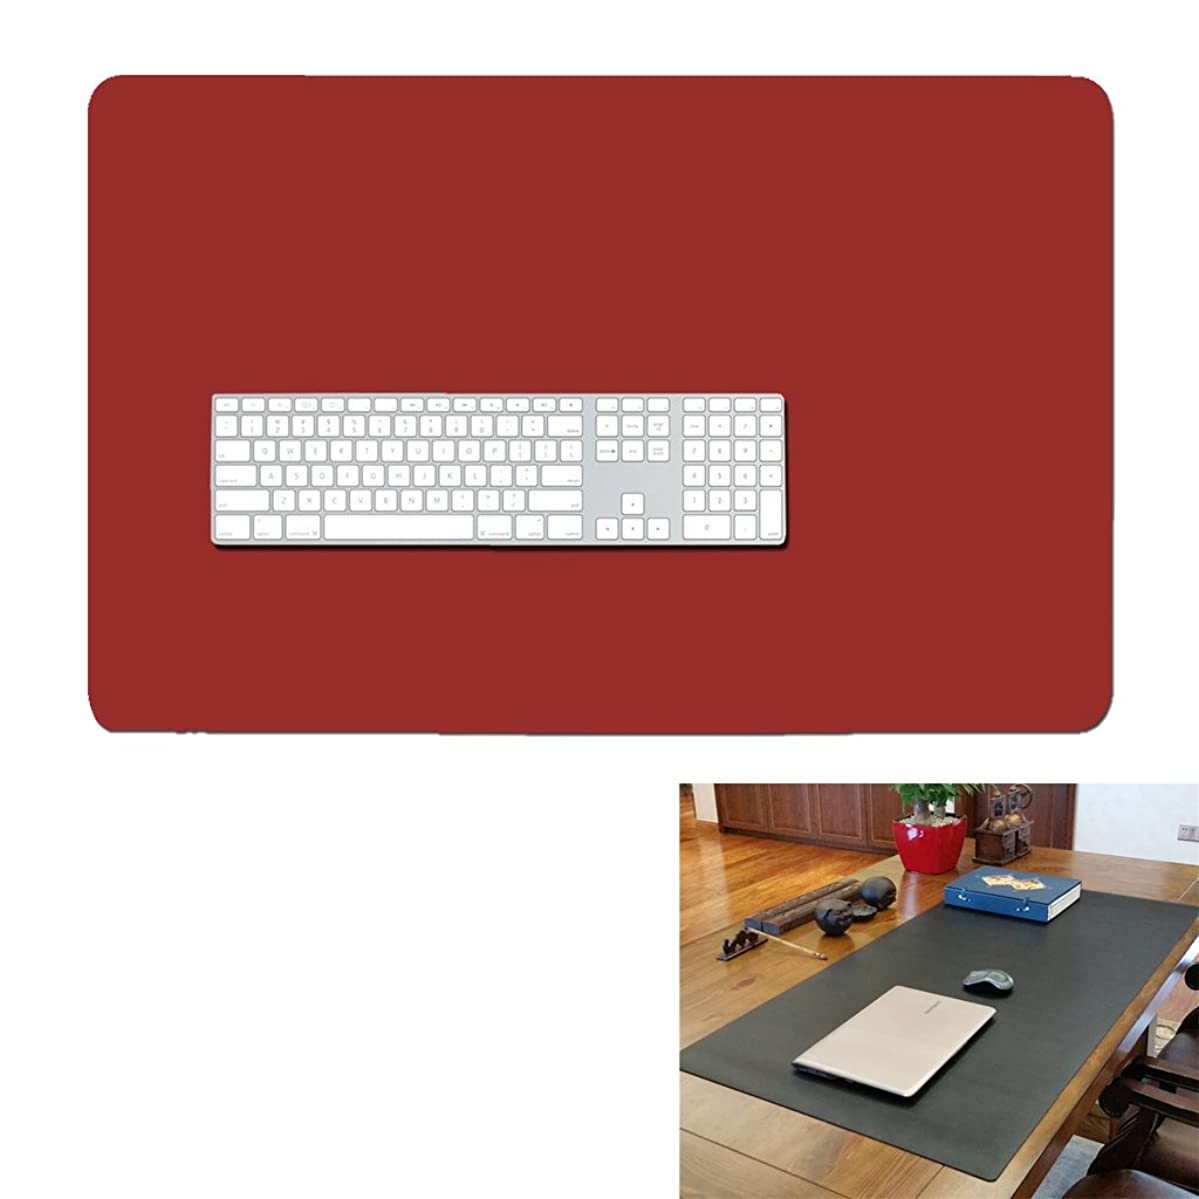 27'' 17'' Extended Gaming Mouse Pad- Large Waterproof Desk Mat- PU Leather Computer Mat for Office and Home (Wine red)